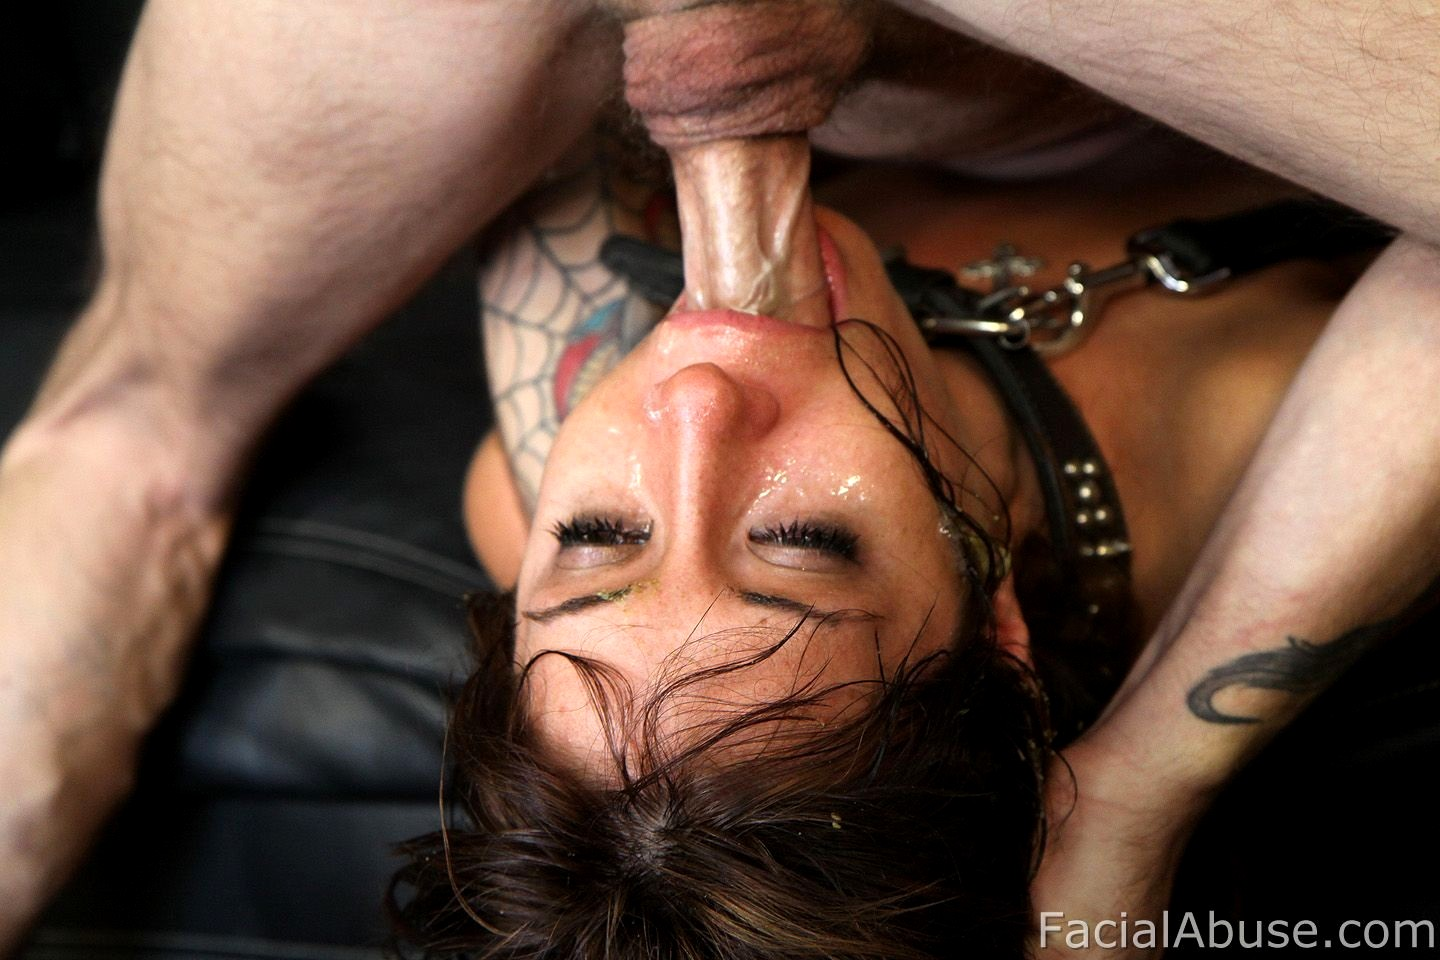 Beautiful Slave Girl With A Ring Gag In Her Mouth Audrey Rose Is Face Fucked